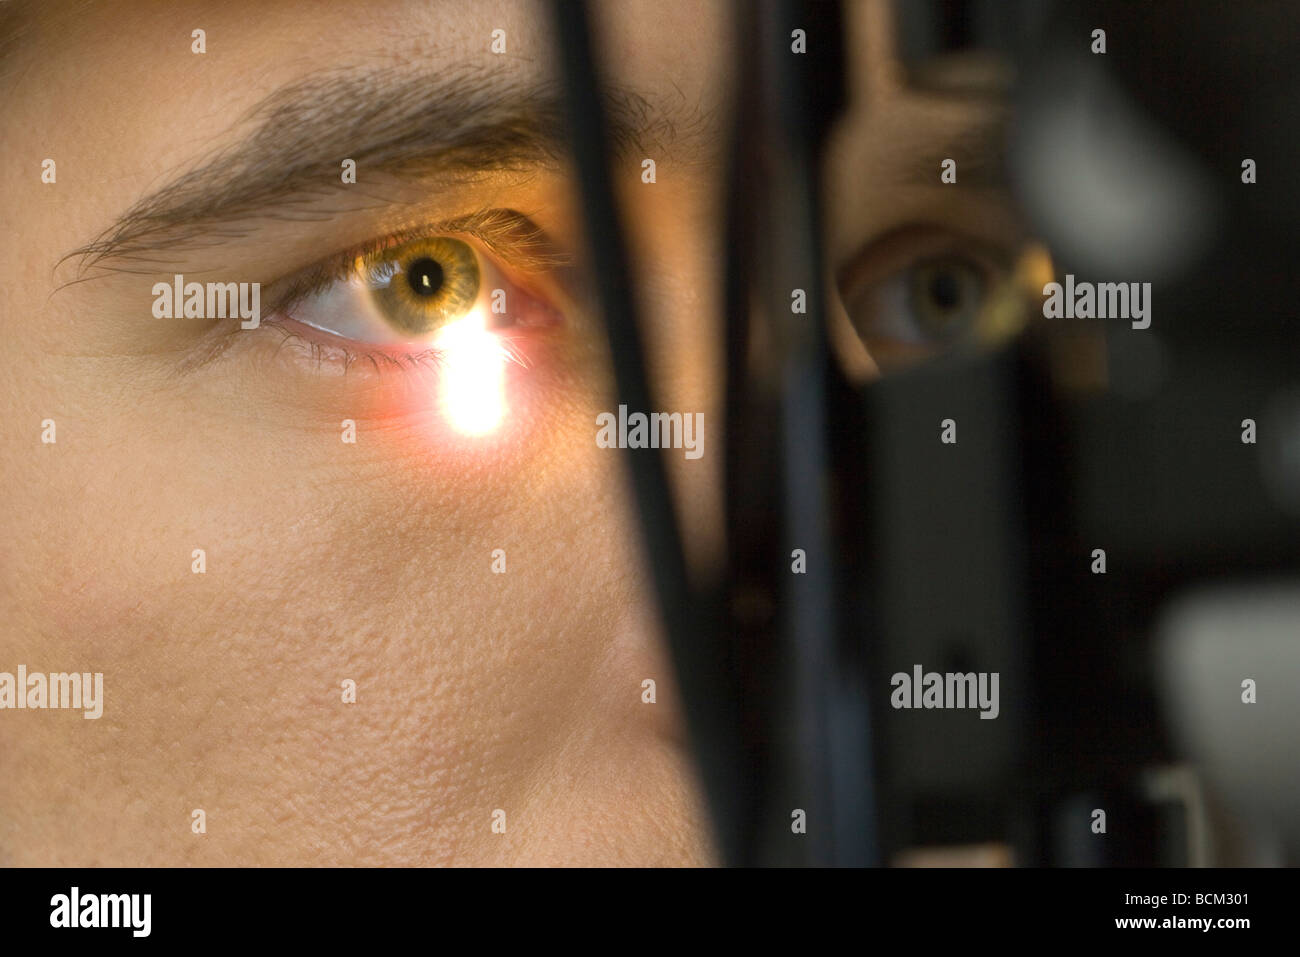 Male patient undergoing eye exam, extreme close-up - Stock Image